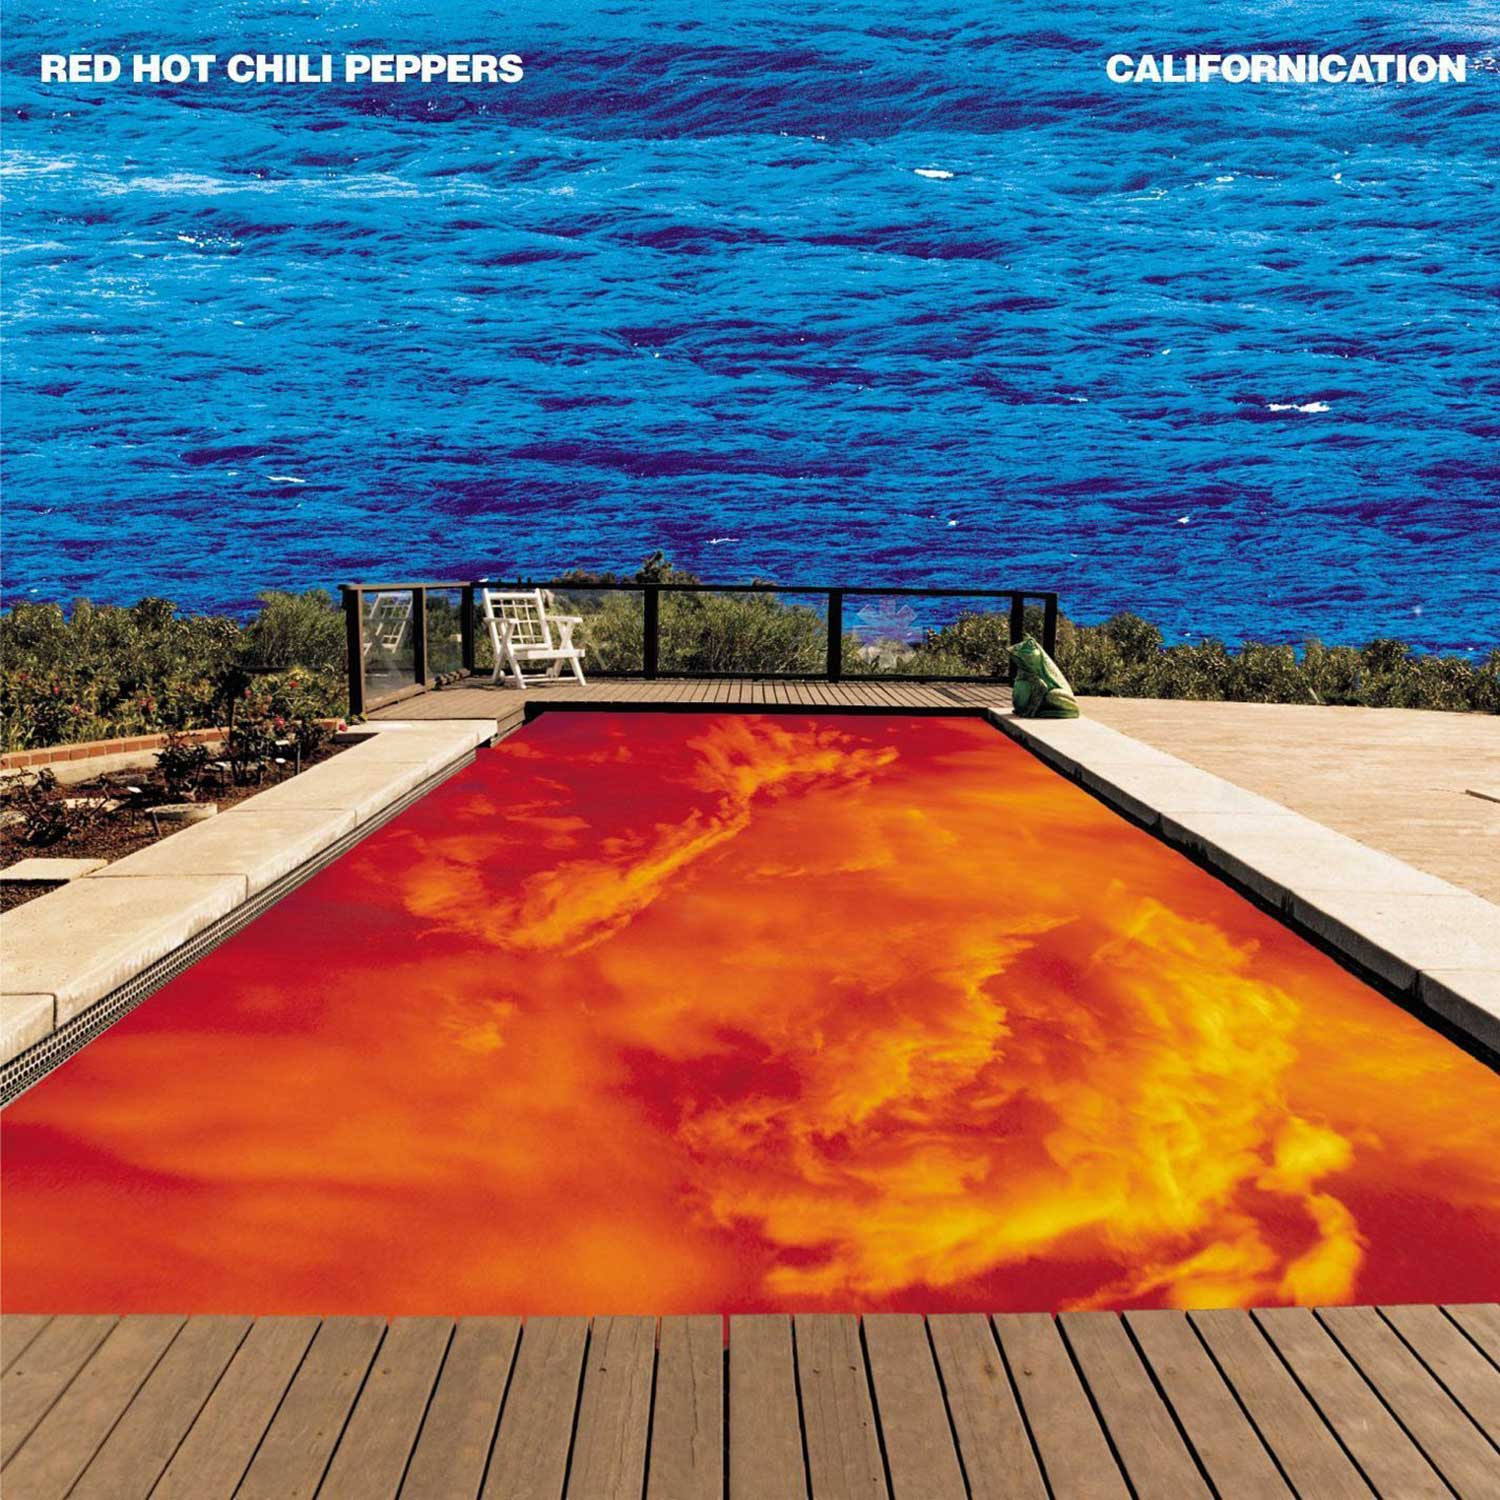 Red Hot Chili Peppers - Californiacation